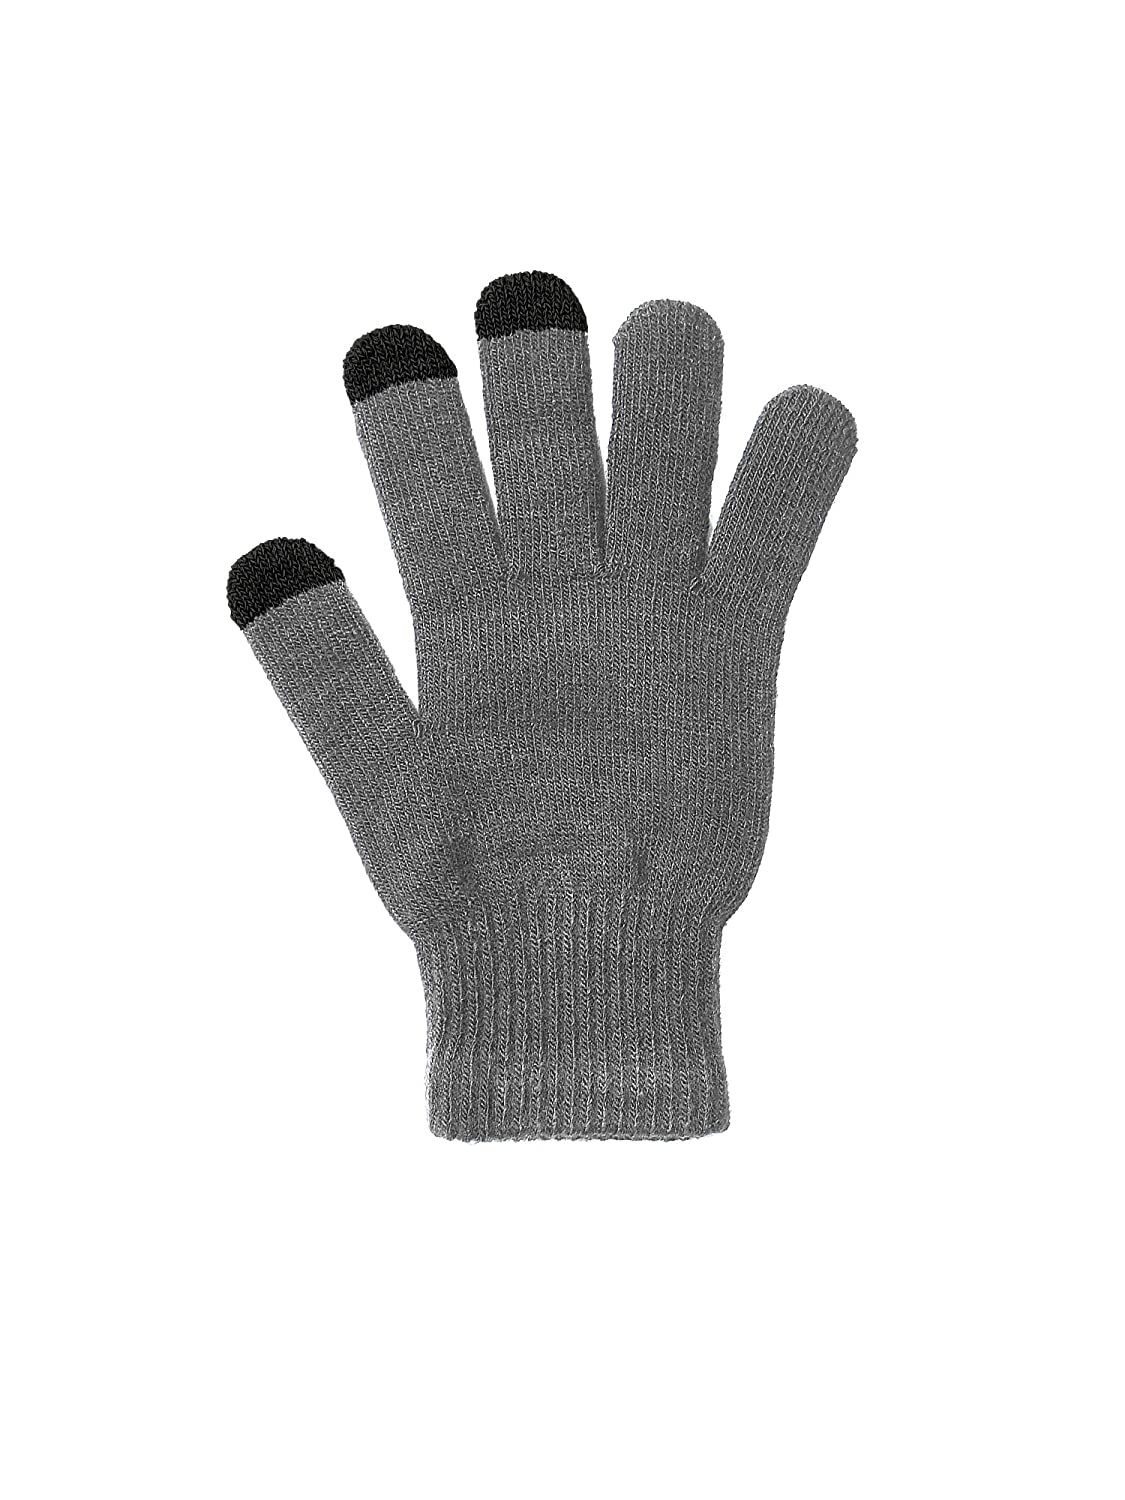 Mens Touch Screen Magic Gloves